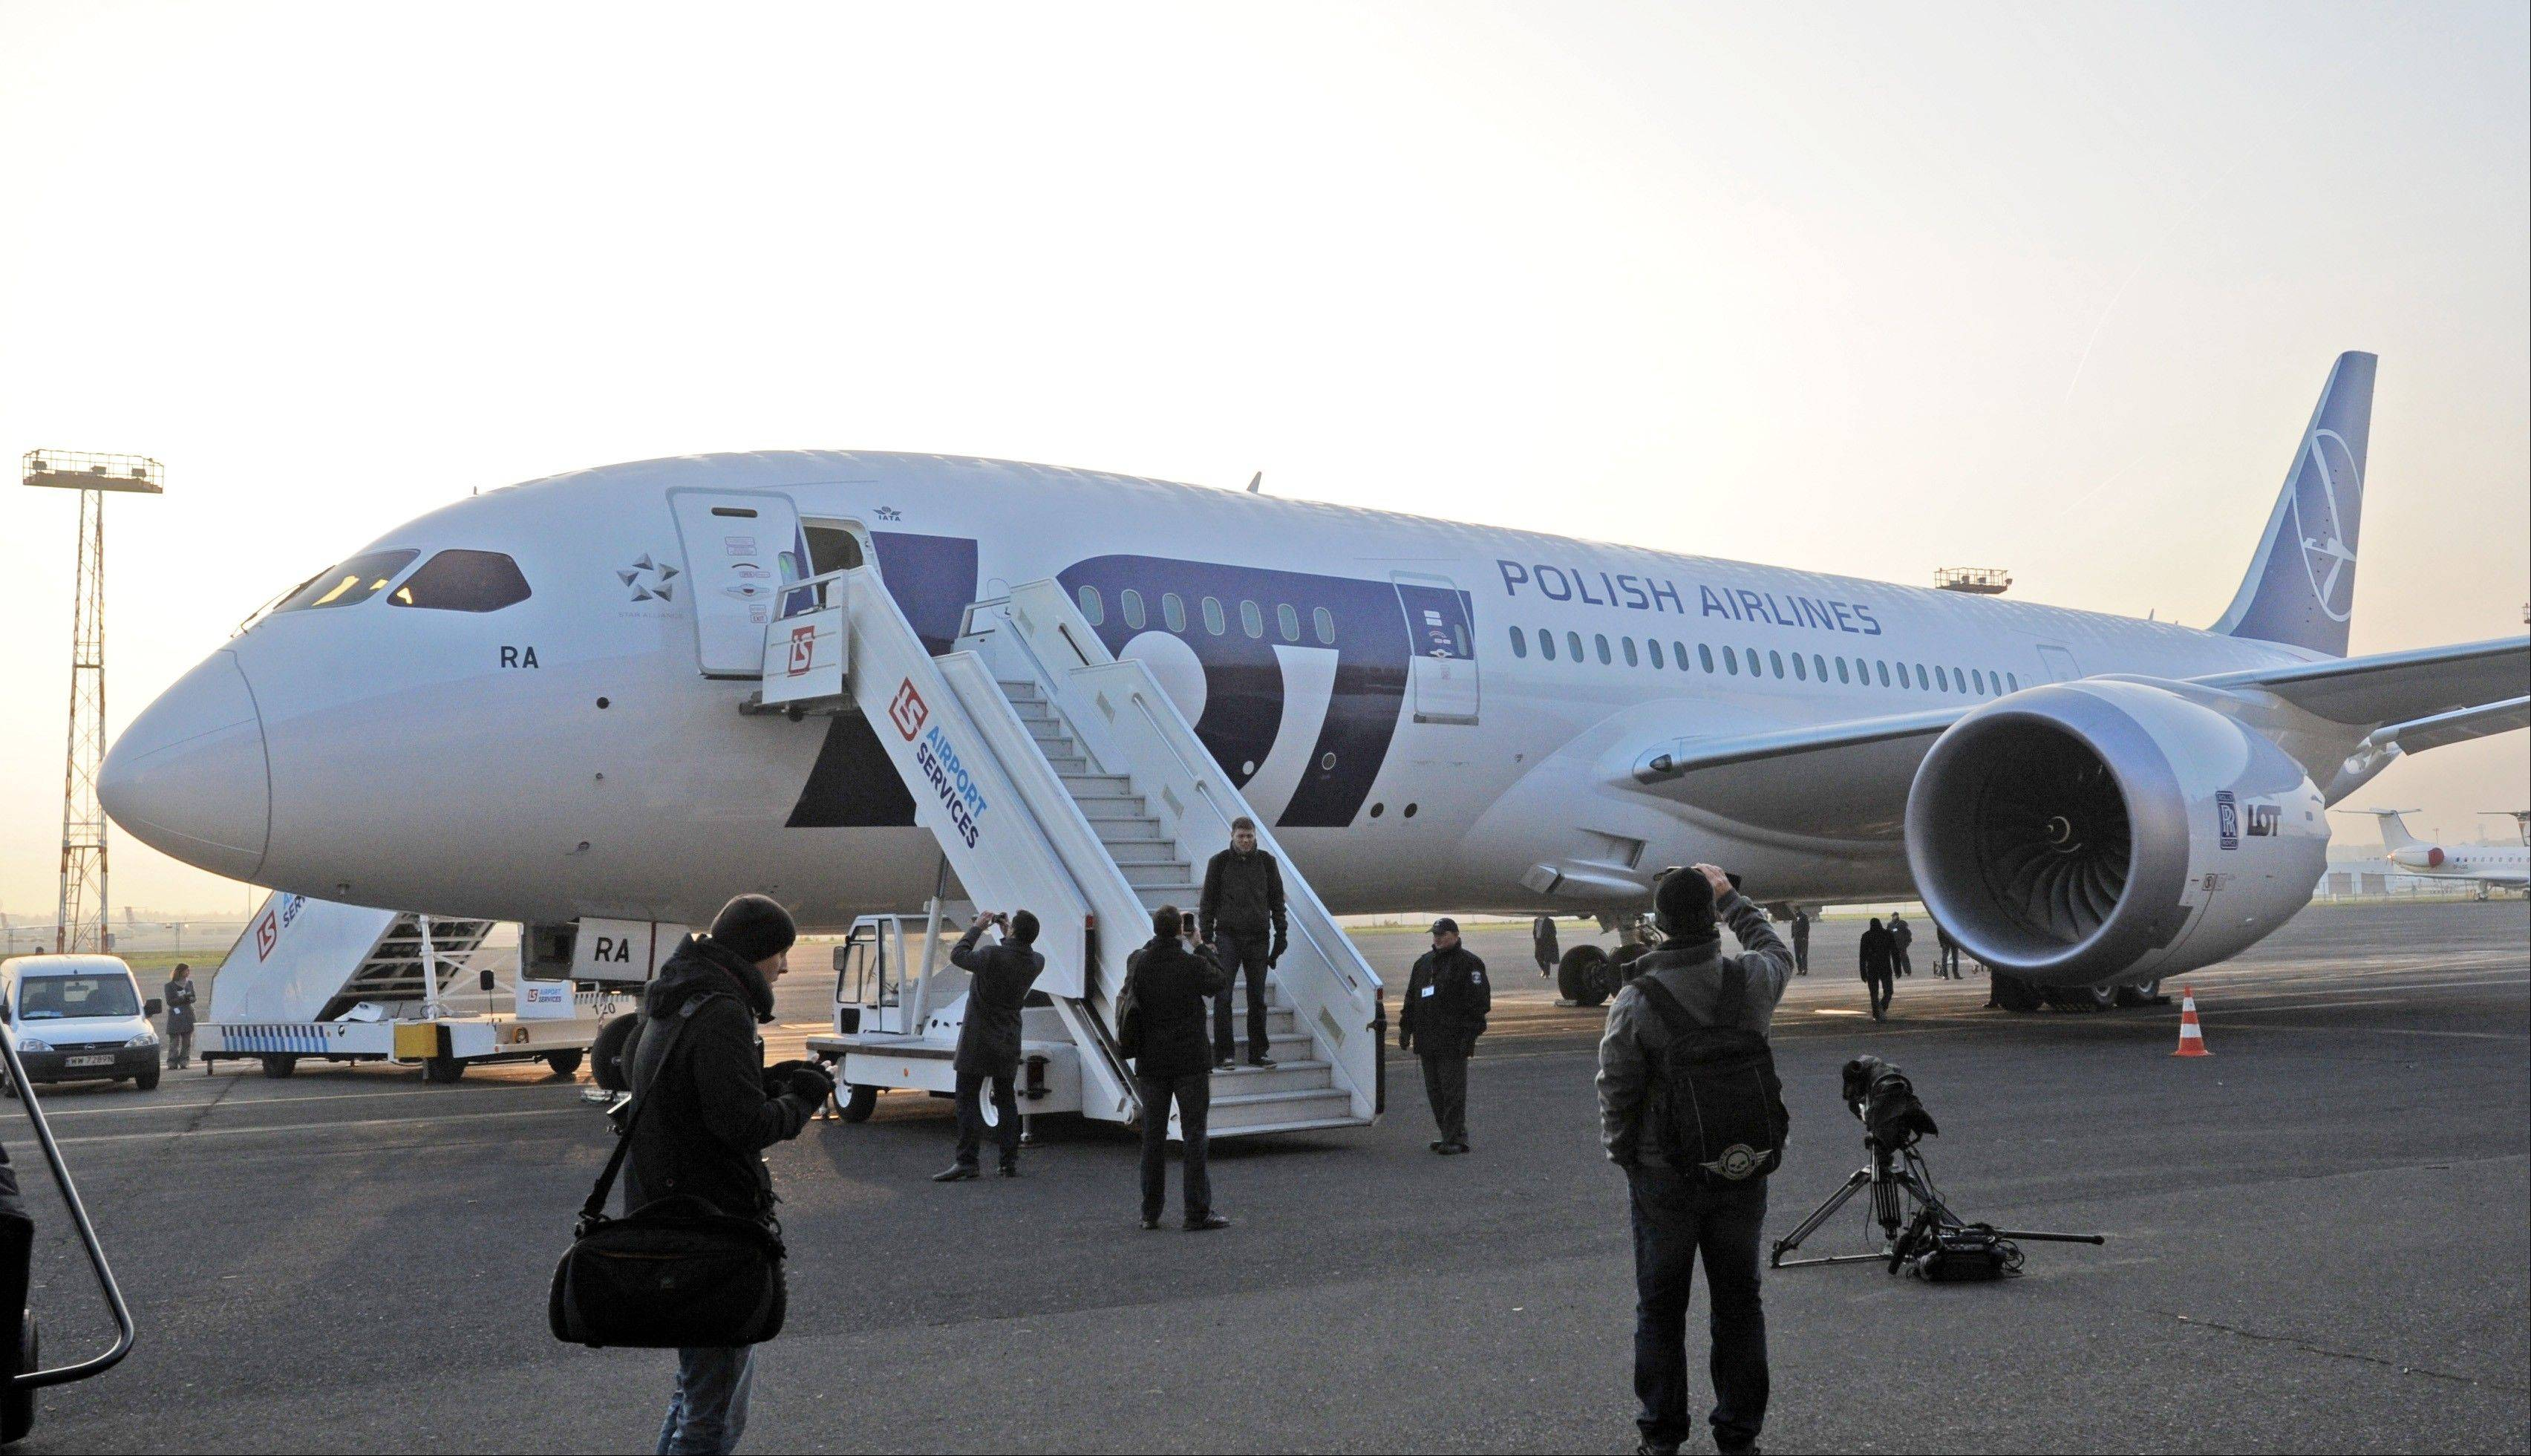 This Nov. 15, 2012 file photo shows Polish Airlines LOT�s first Boeing 787 Dreamliner at the Chopin airport tarmac in Warsaw, Poland.